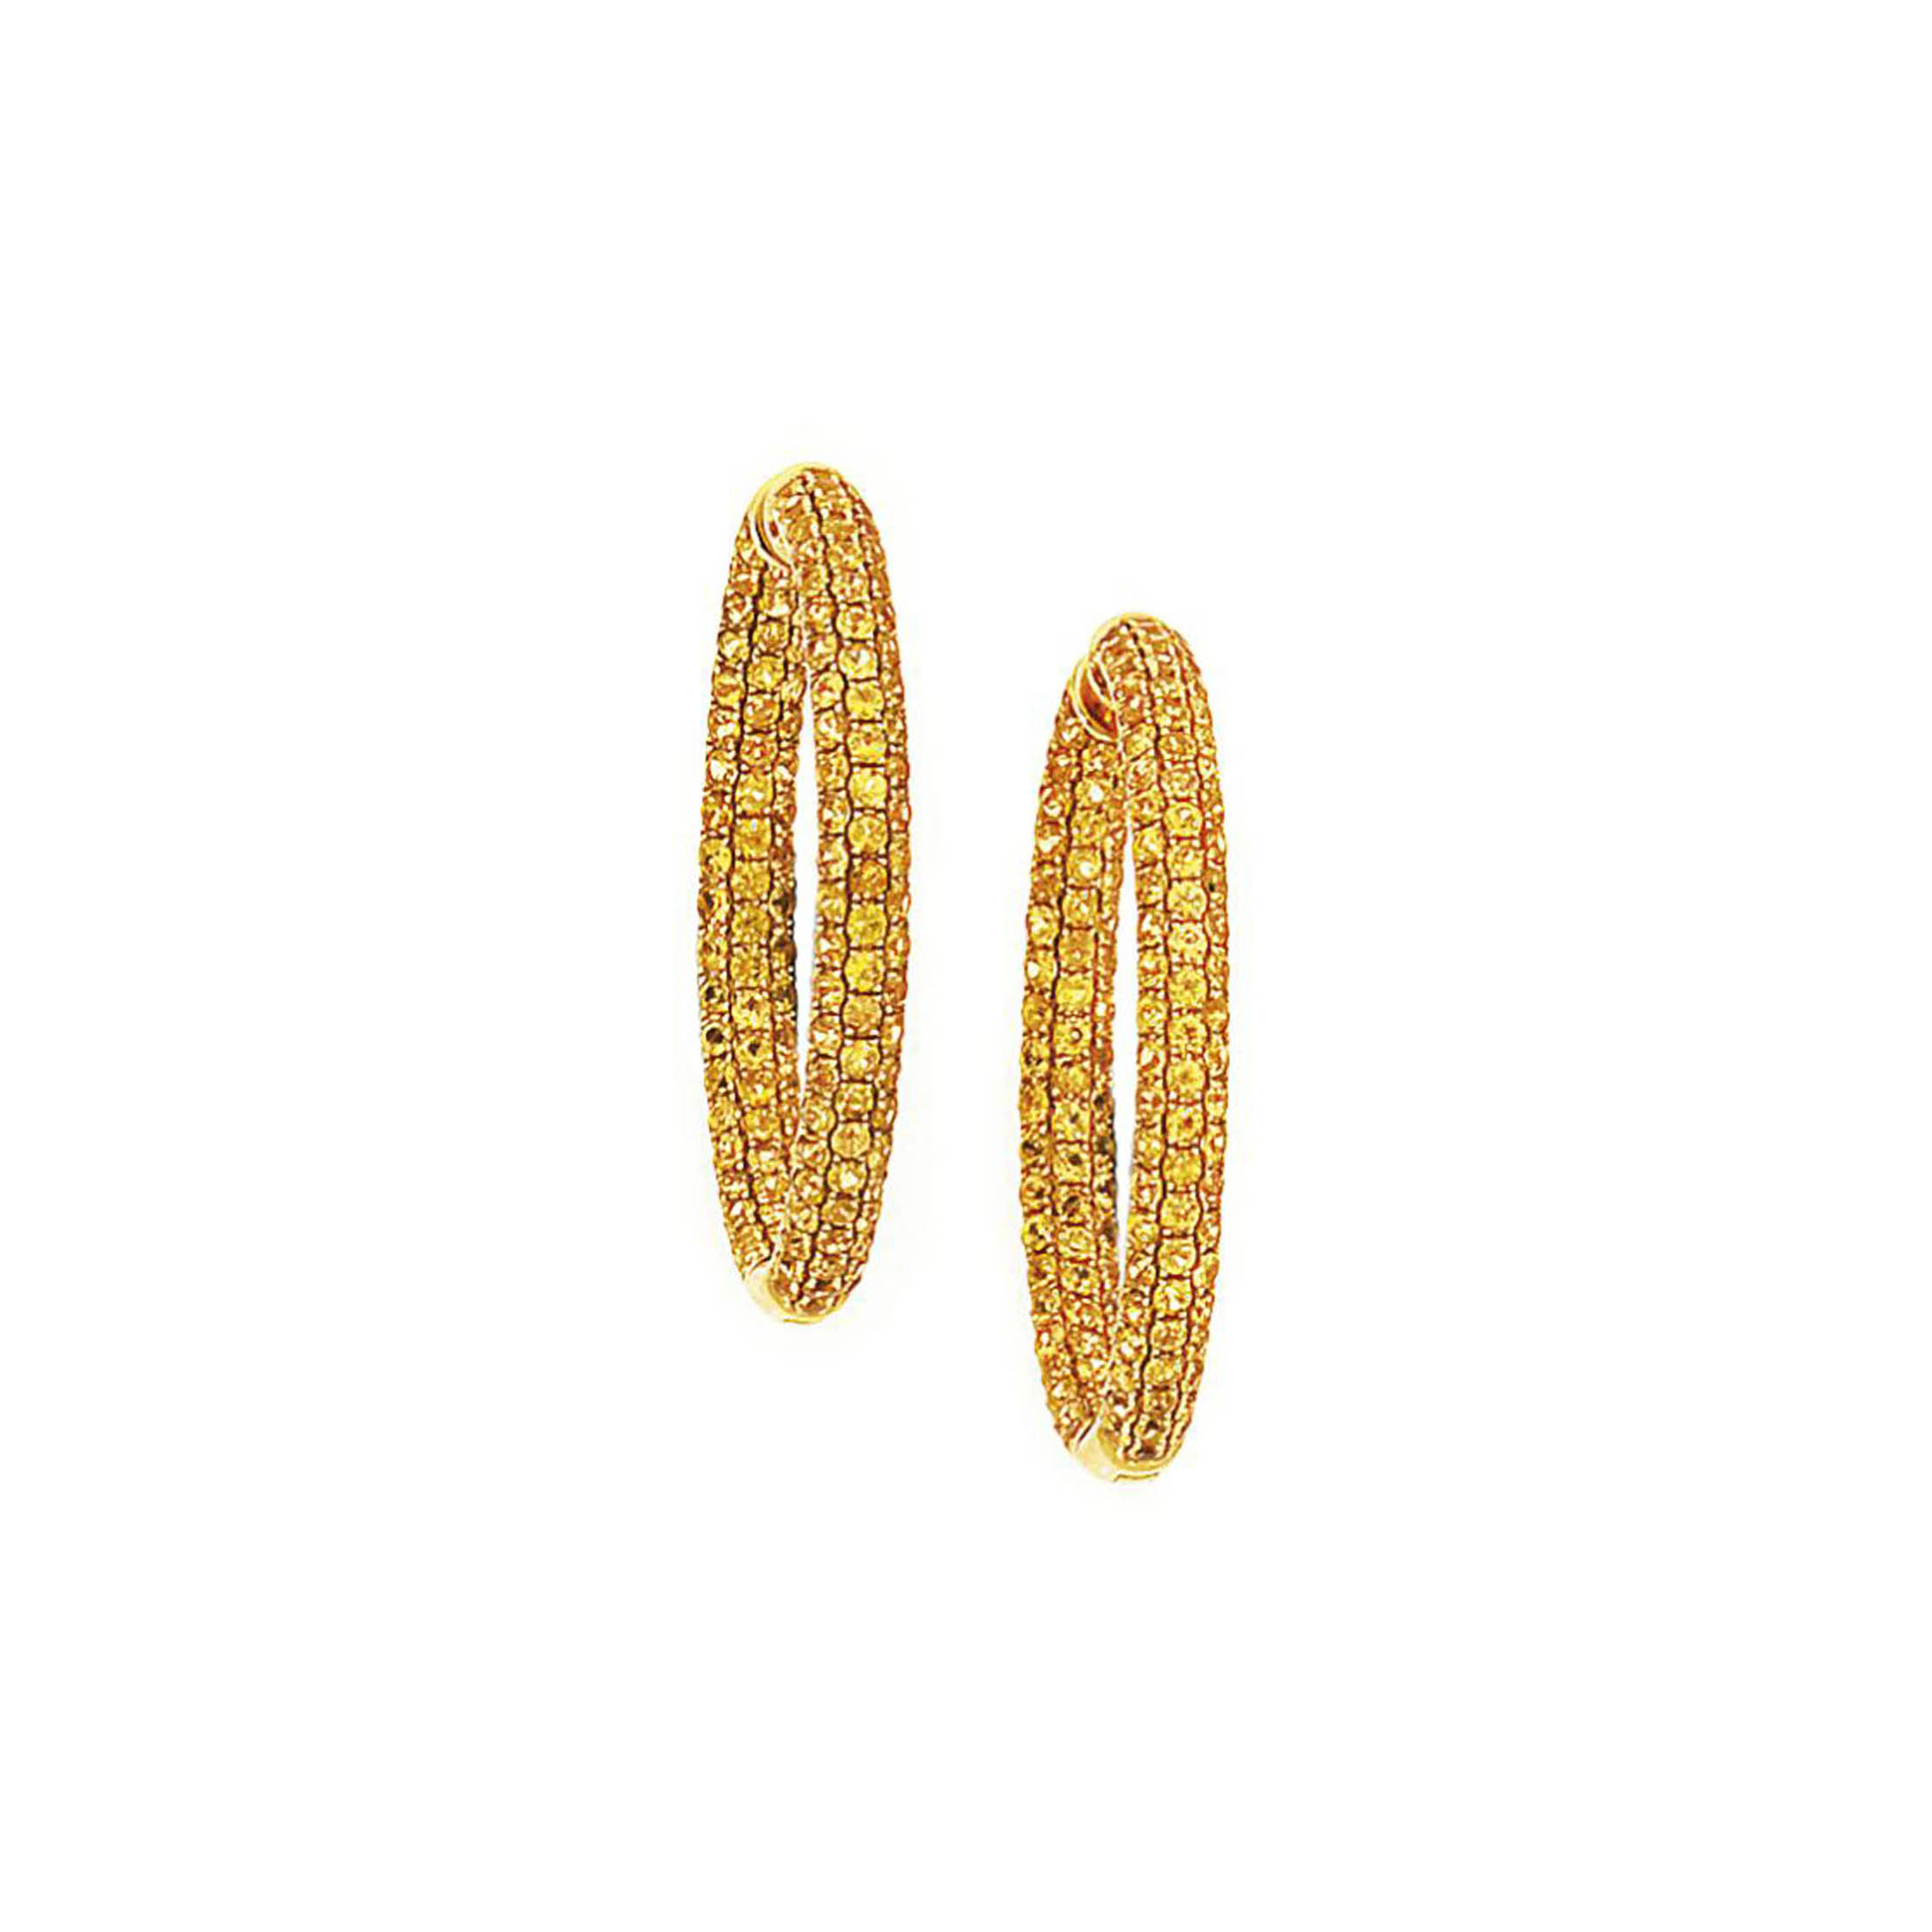 A pair of yellow sapphire earhoops